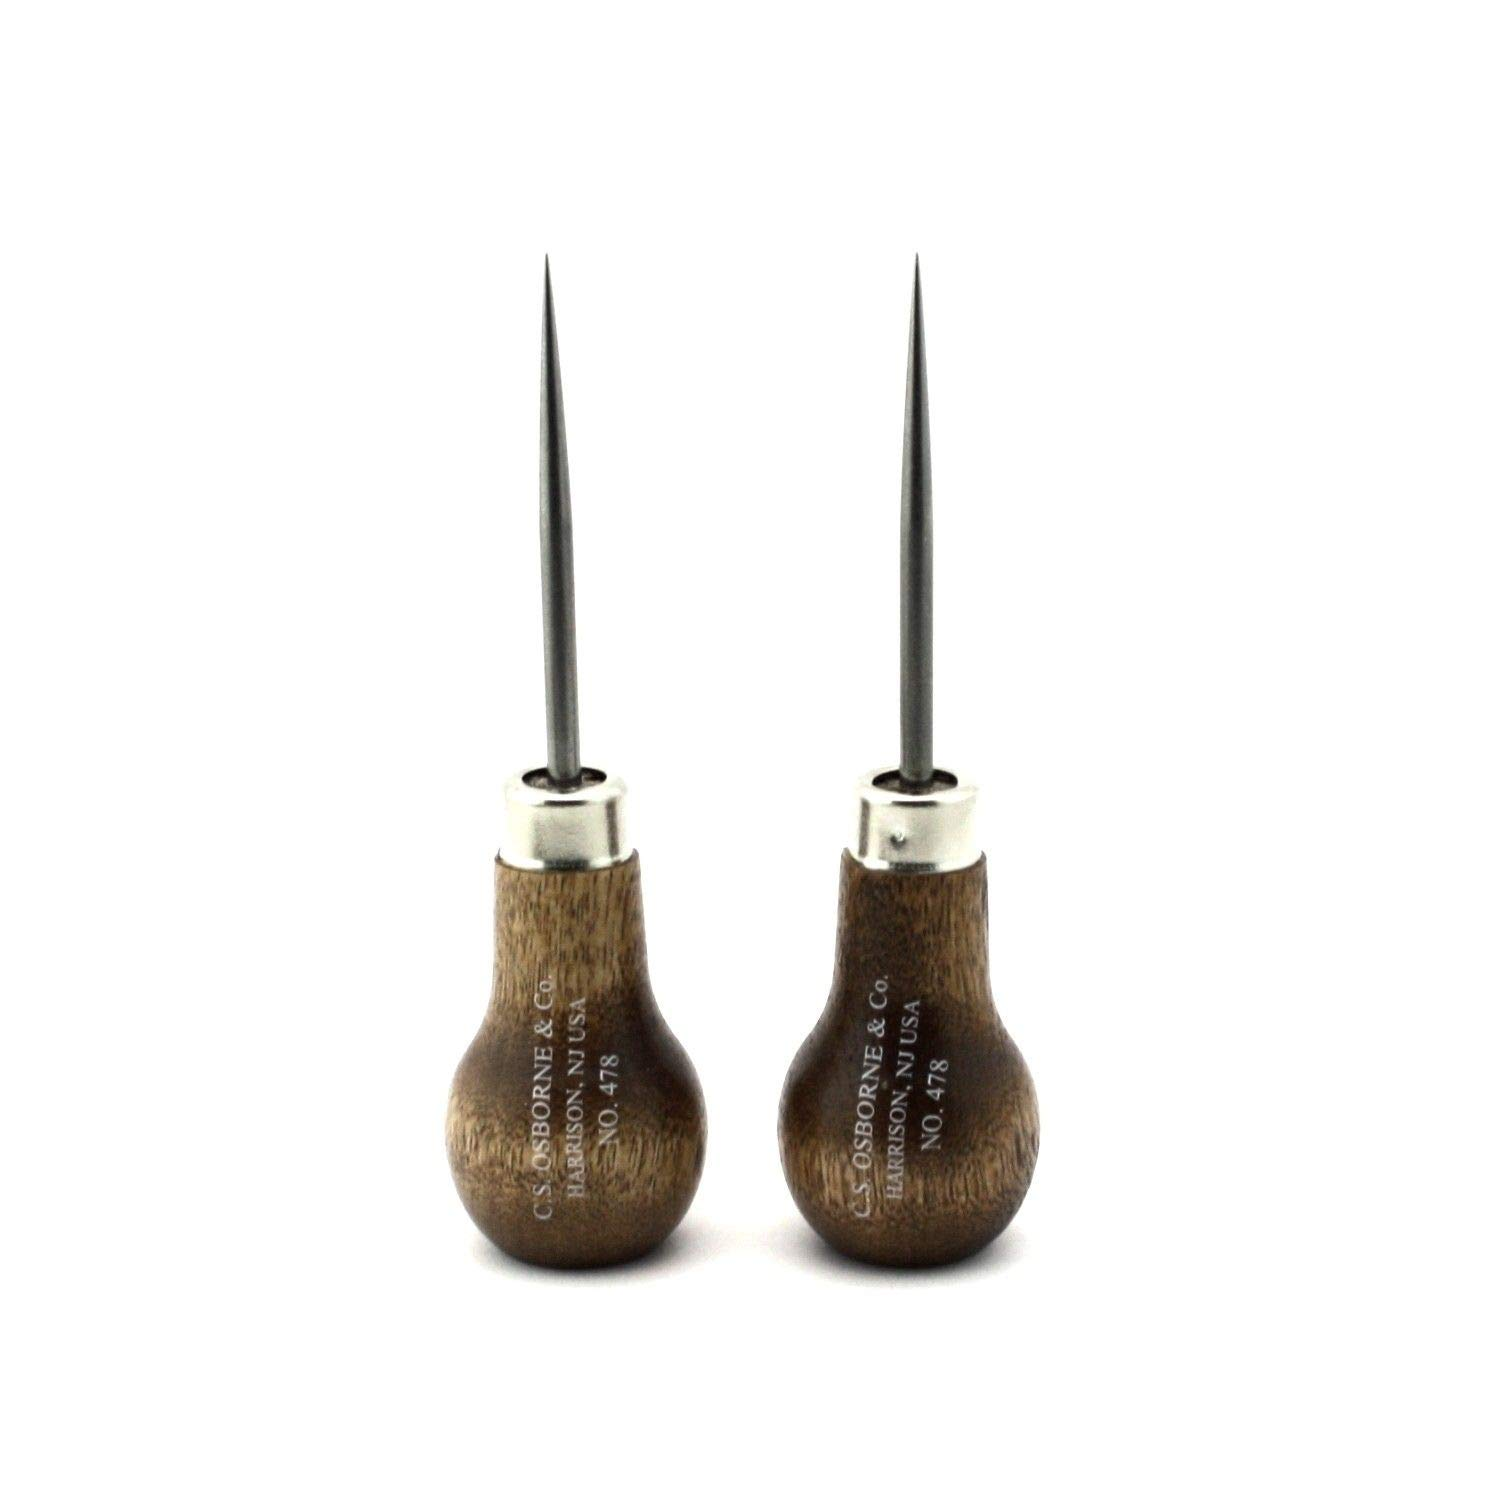 Leather Tools Made in USA Set of 2 C.S Osborne Scratch Awl #478 3-7//8 Long